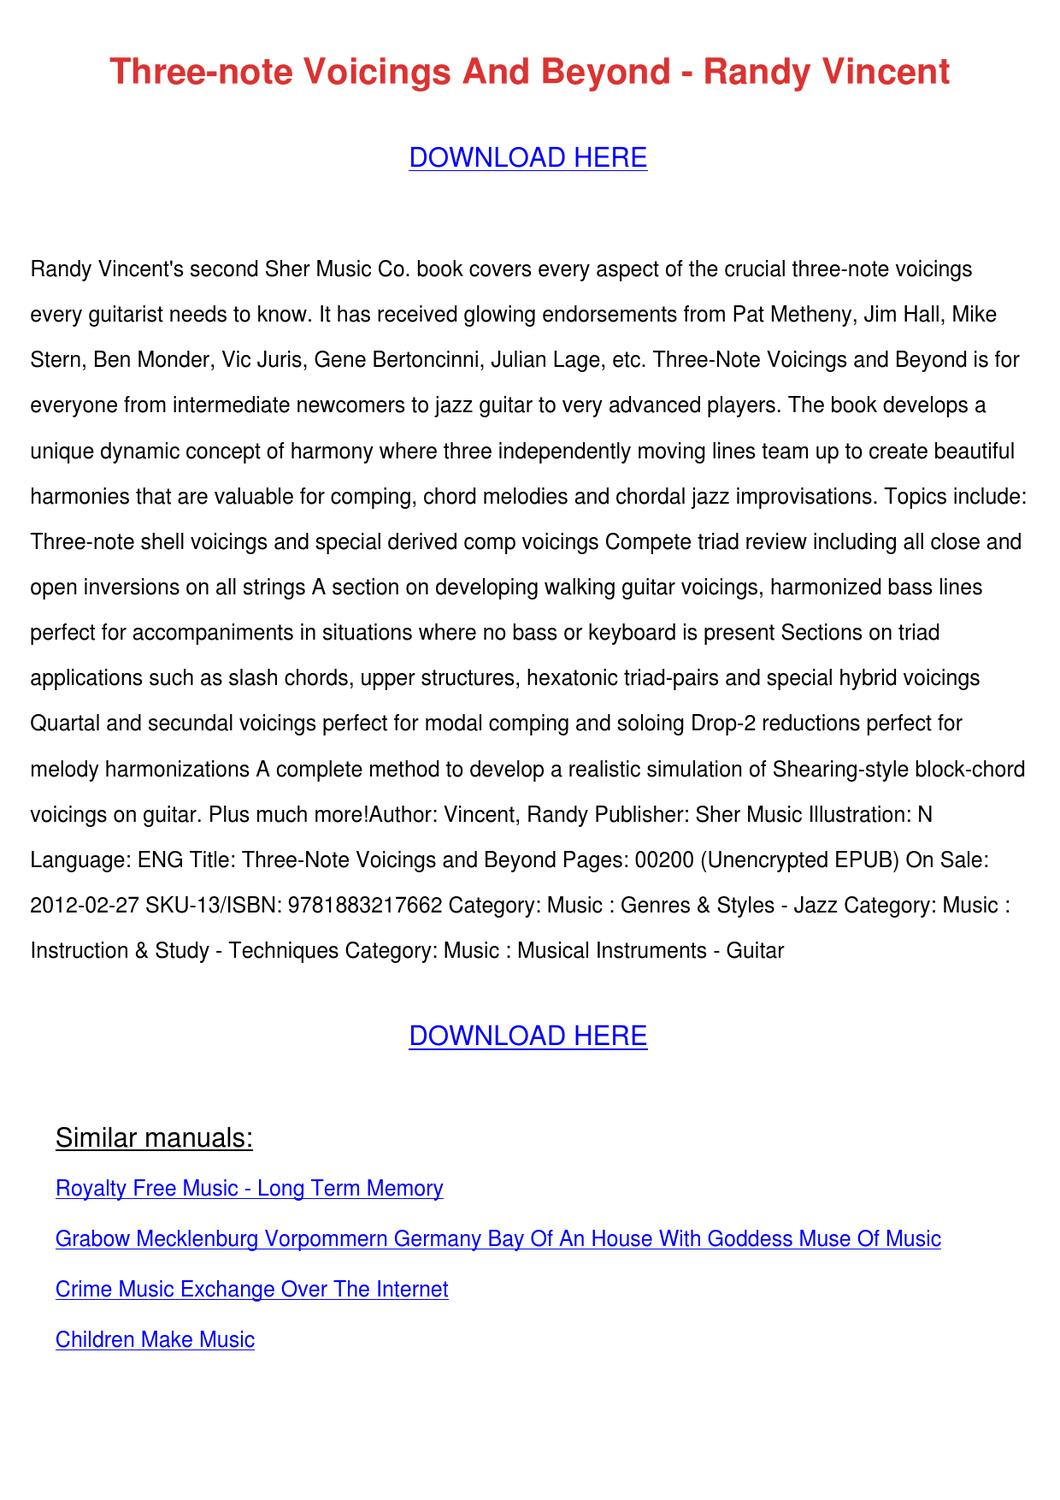 Three Note Voicings And Beyond Randy Vincent by VelvaRutter - issuu